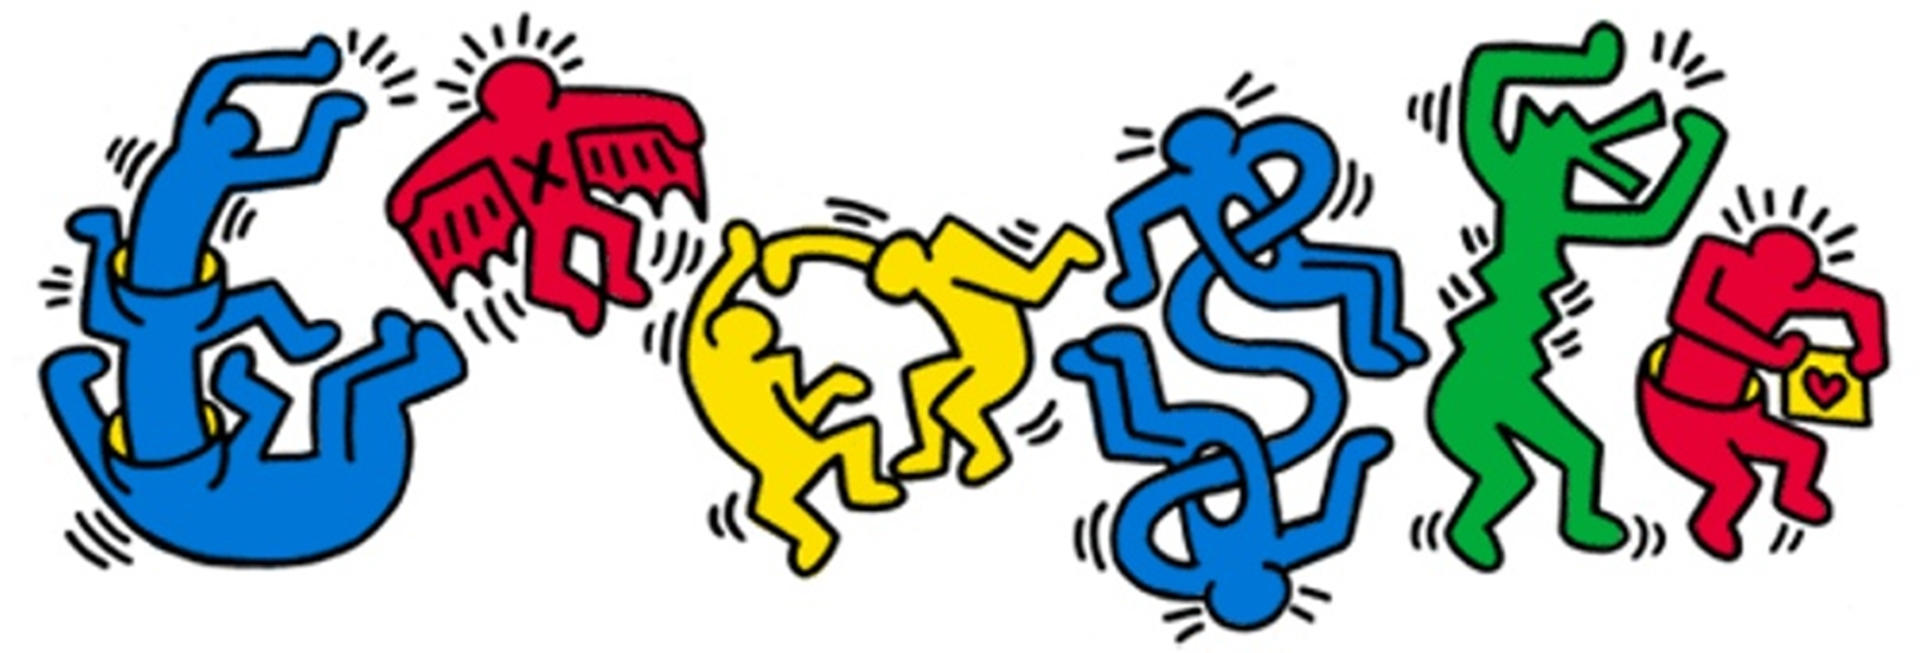 Google Doodle Keith Haring 54th Birthday